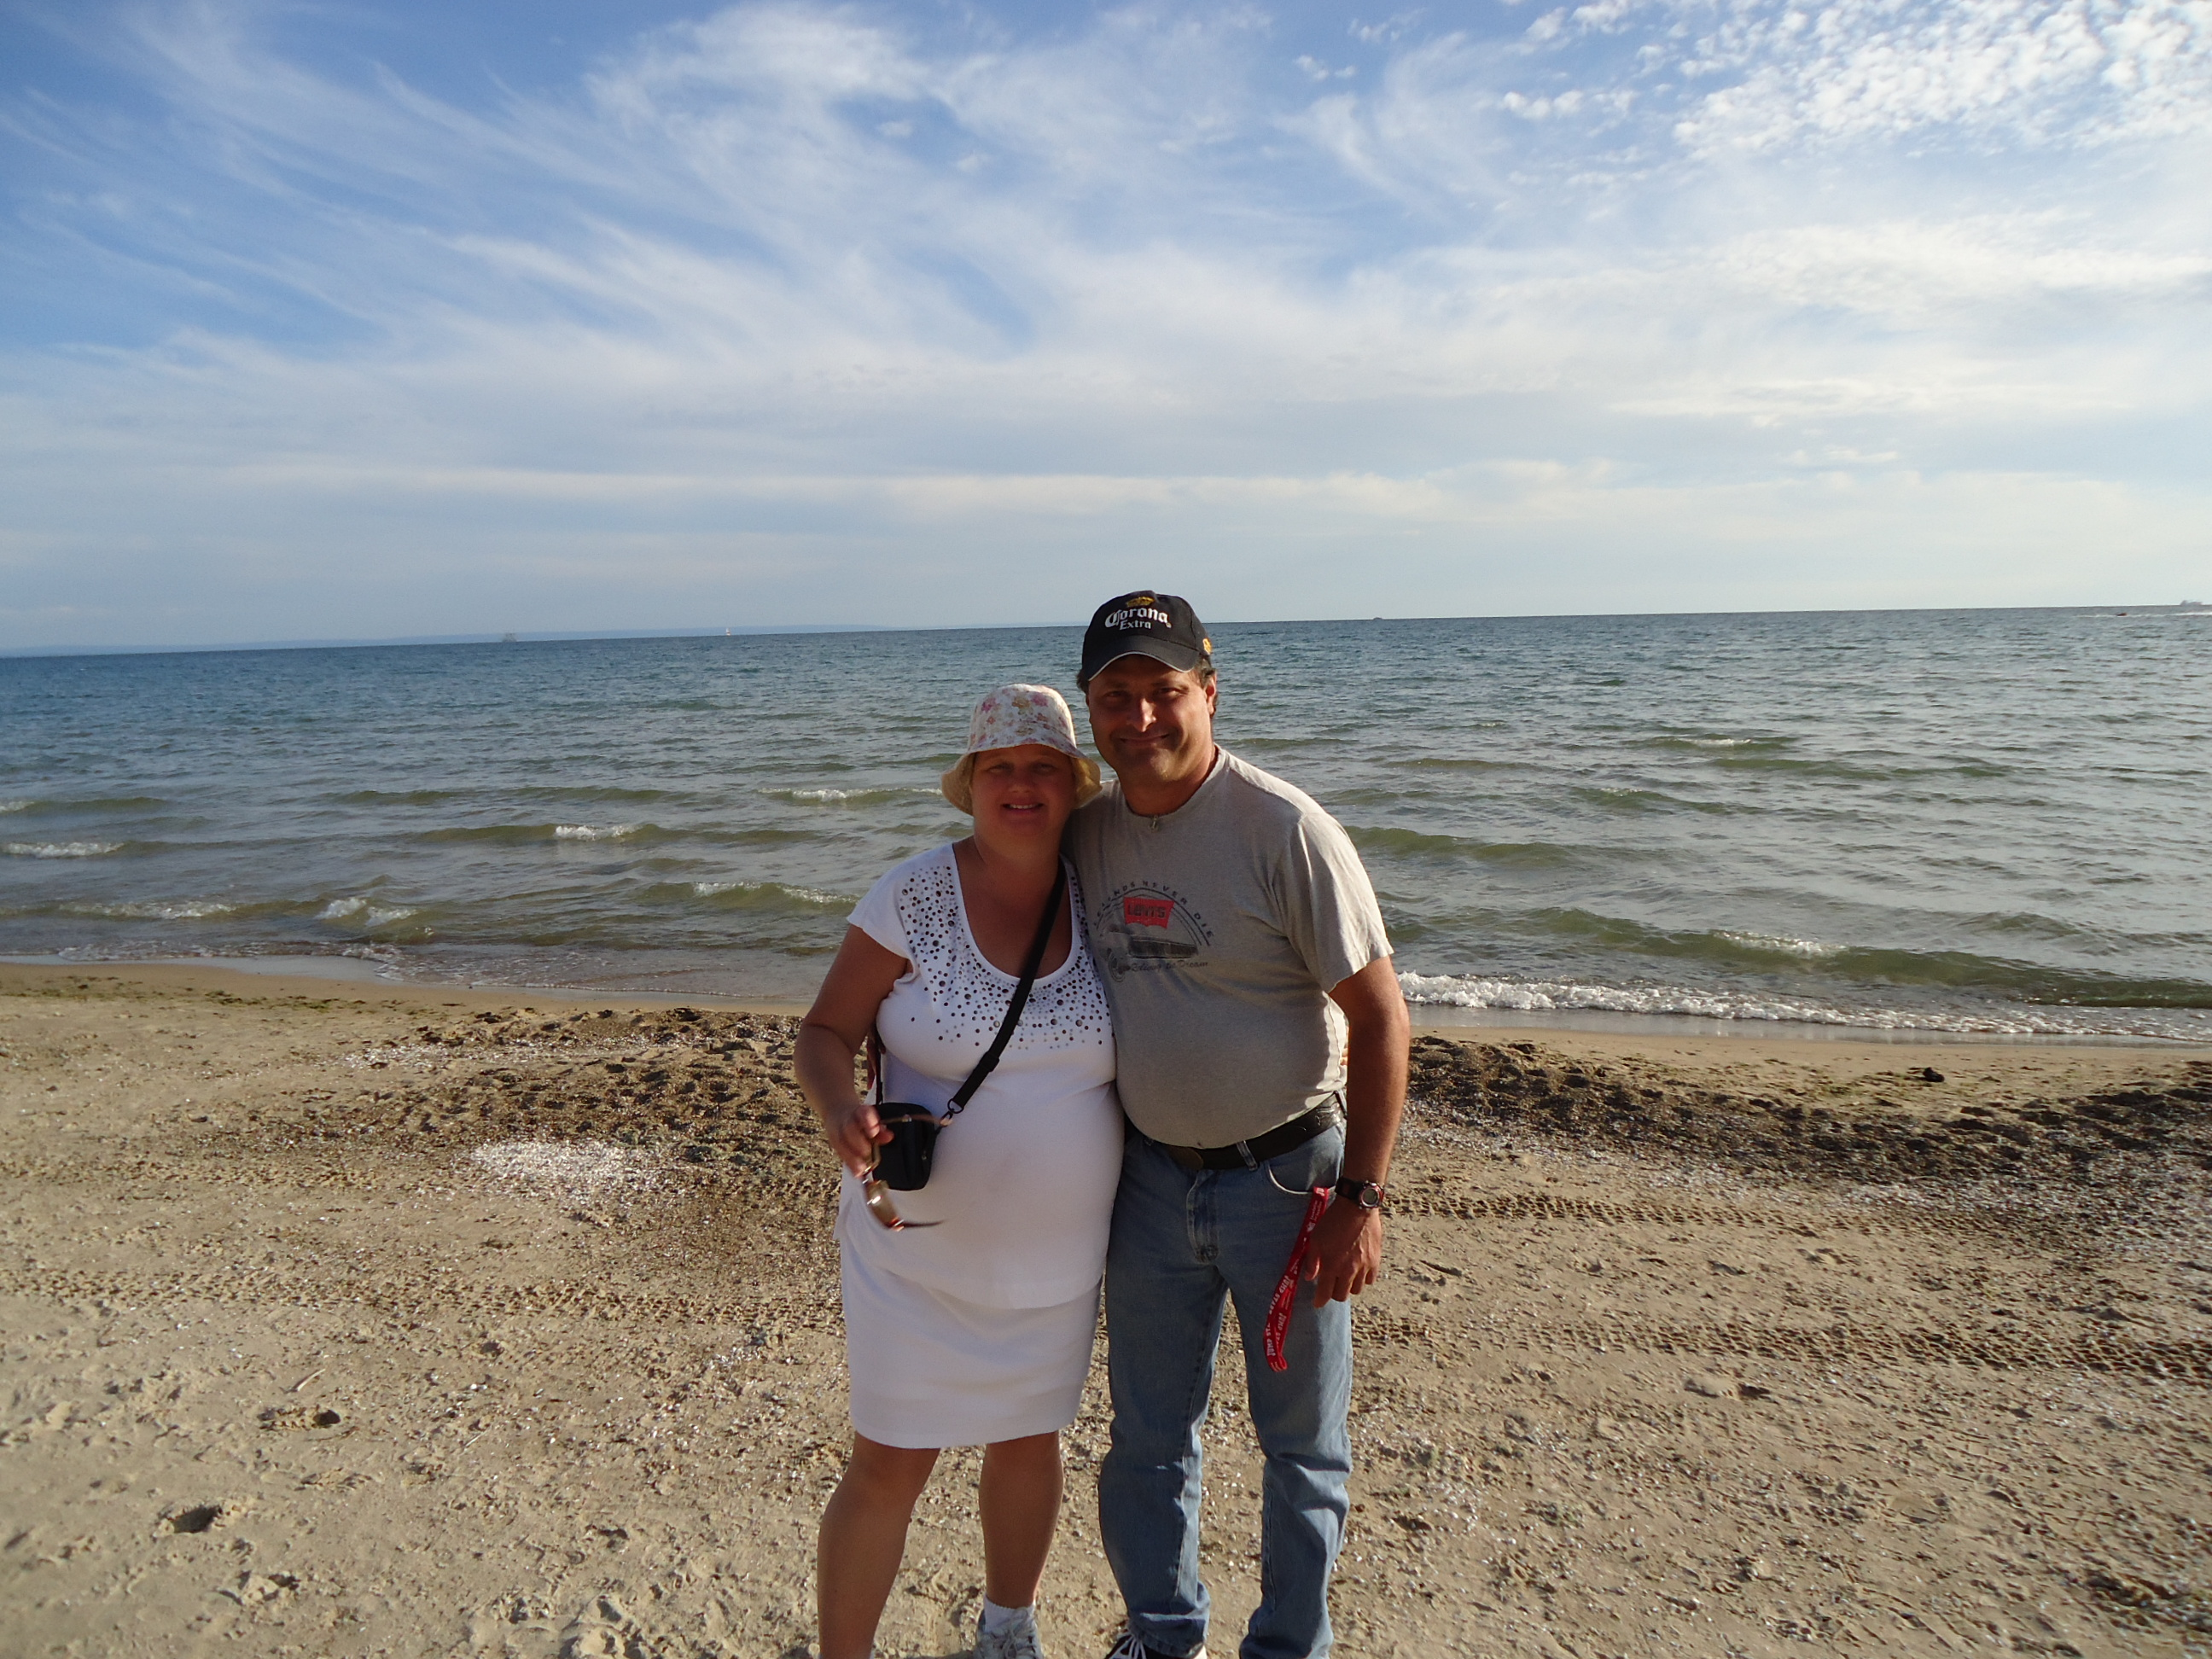 Linda Randall and harry on the beach pleasant beach rd port colborne ont 5 aug 2013 clyde